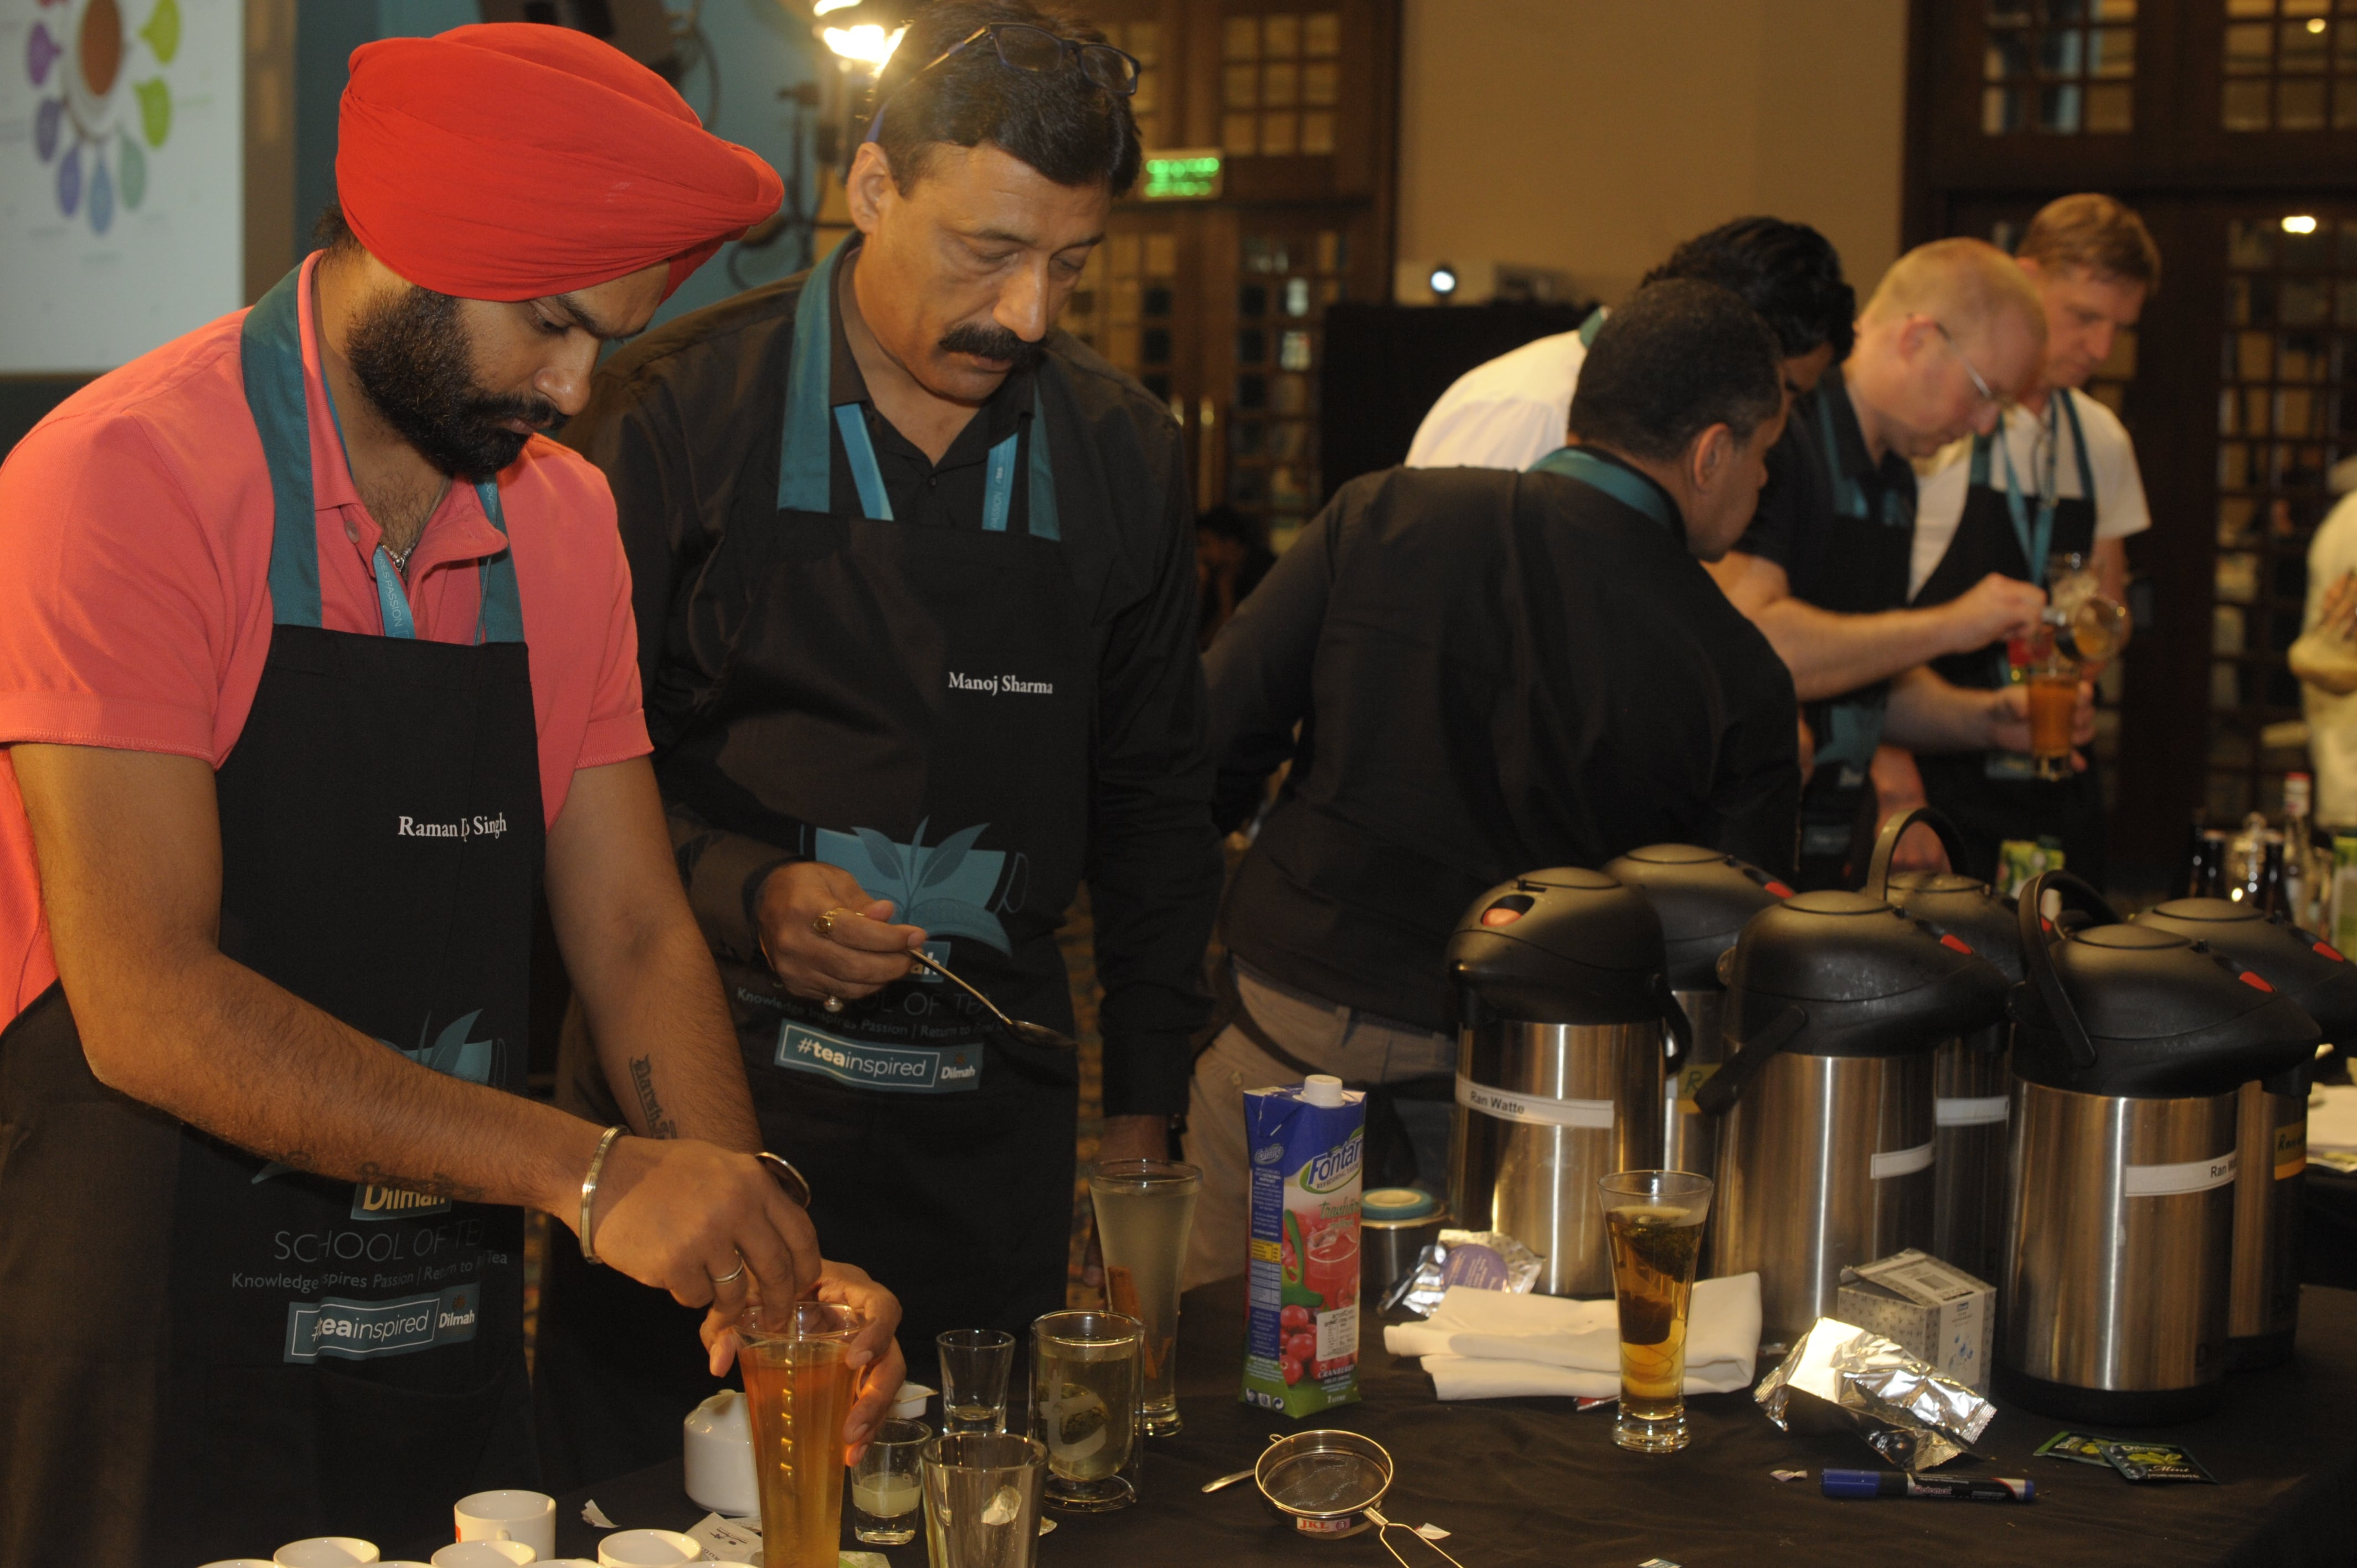 Each individual preparing a drink suitable for selected mood